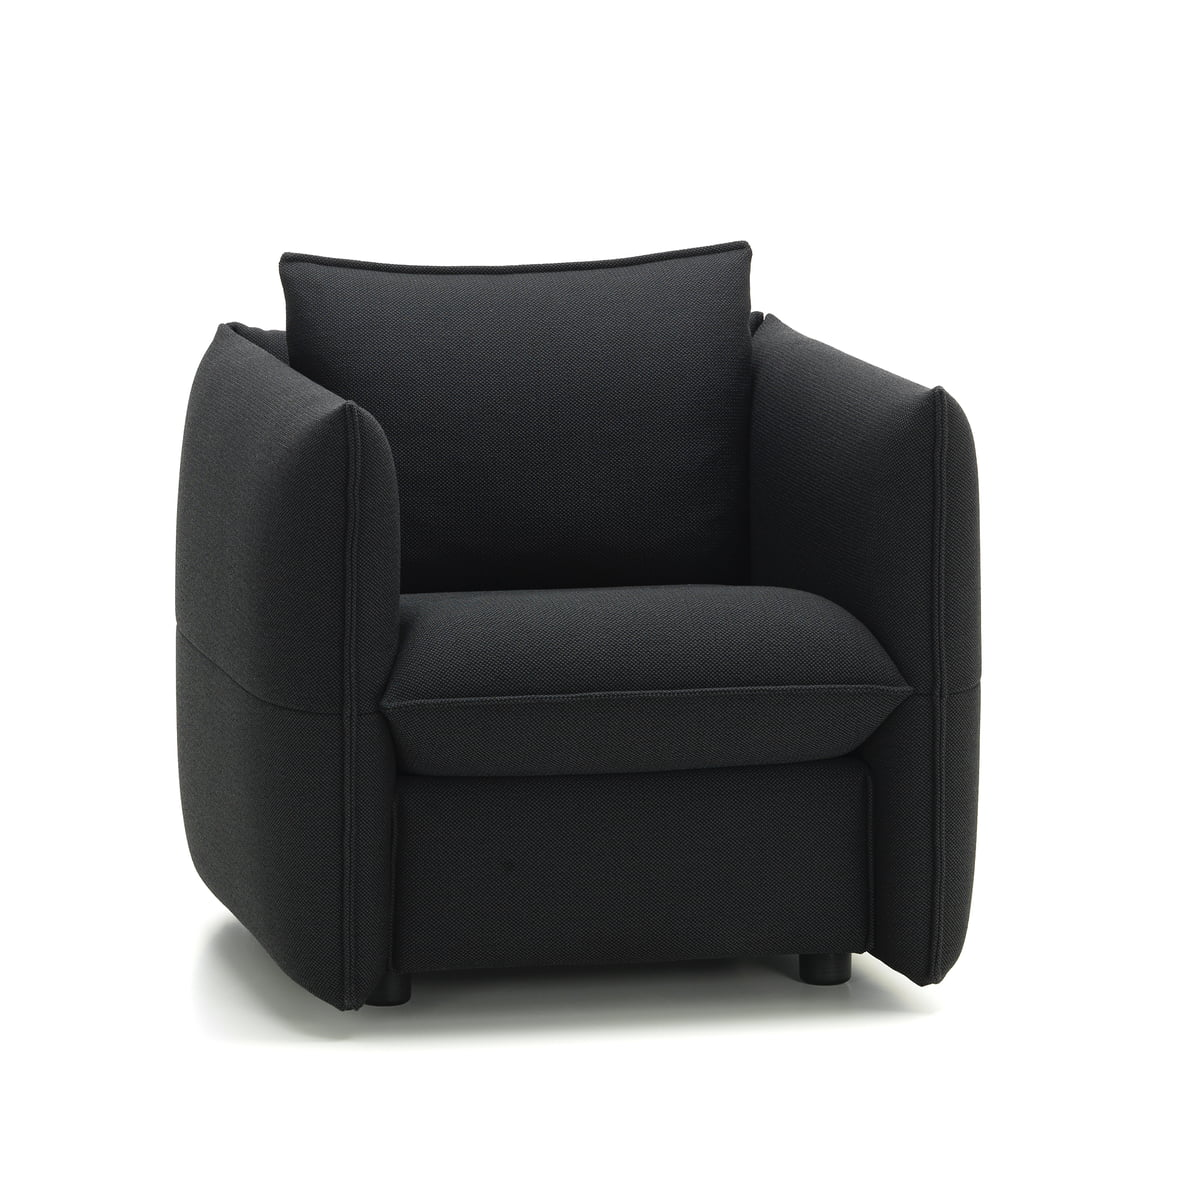 club sessel mariposa von vitra connox shop. Black Bedroom Furniture Sets. Home Design Ideas